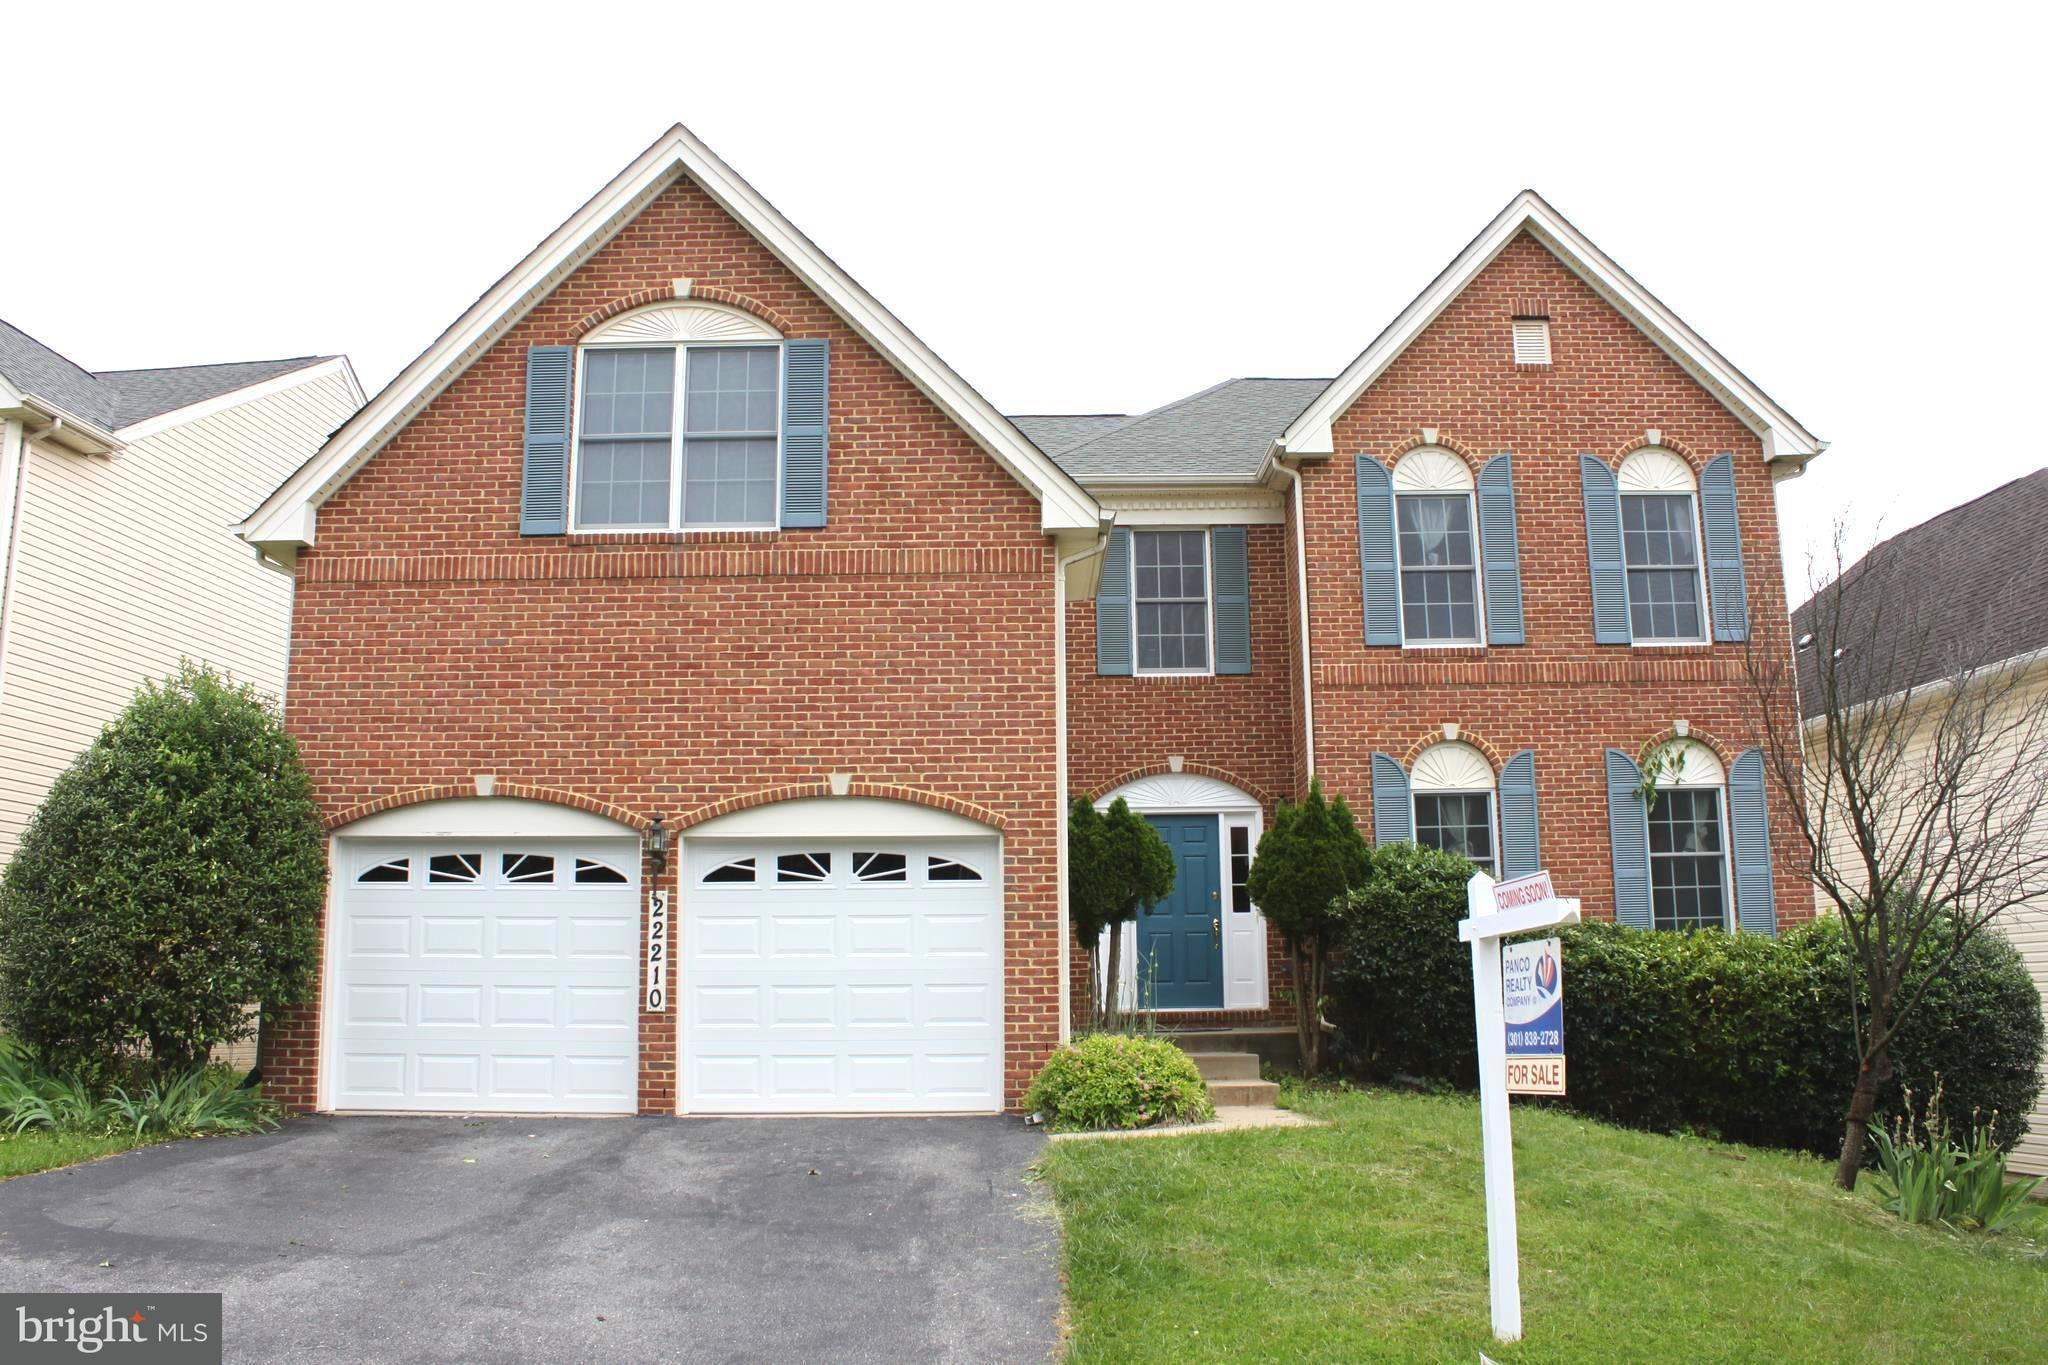 22210 FAIR GARDEN LANE, Clarksburg, MD, 20871 | RE/MAX Gateway